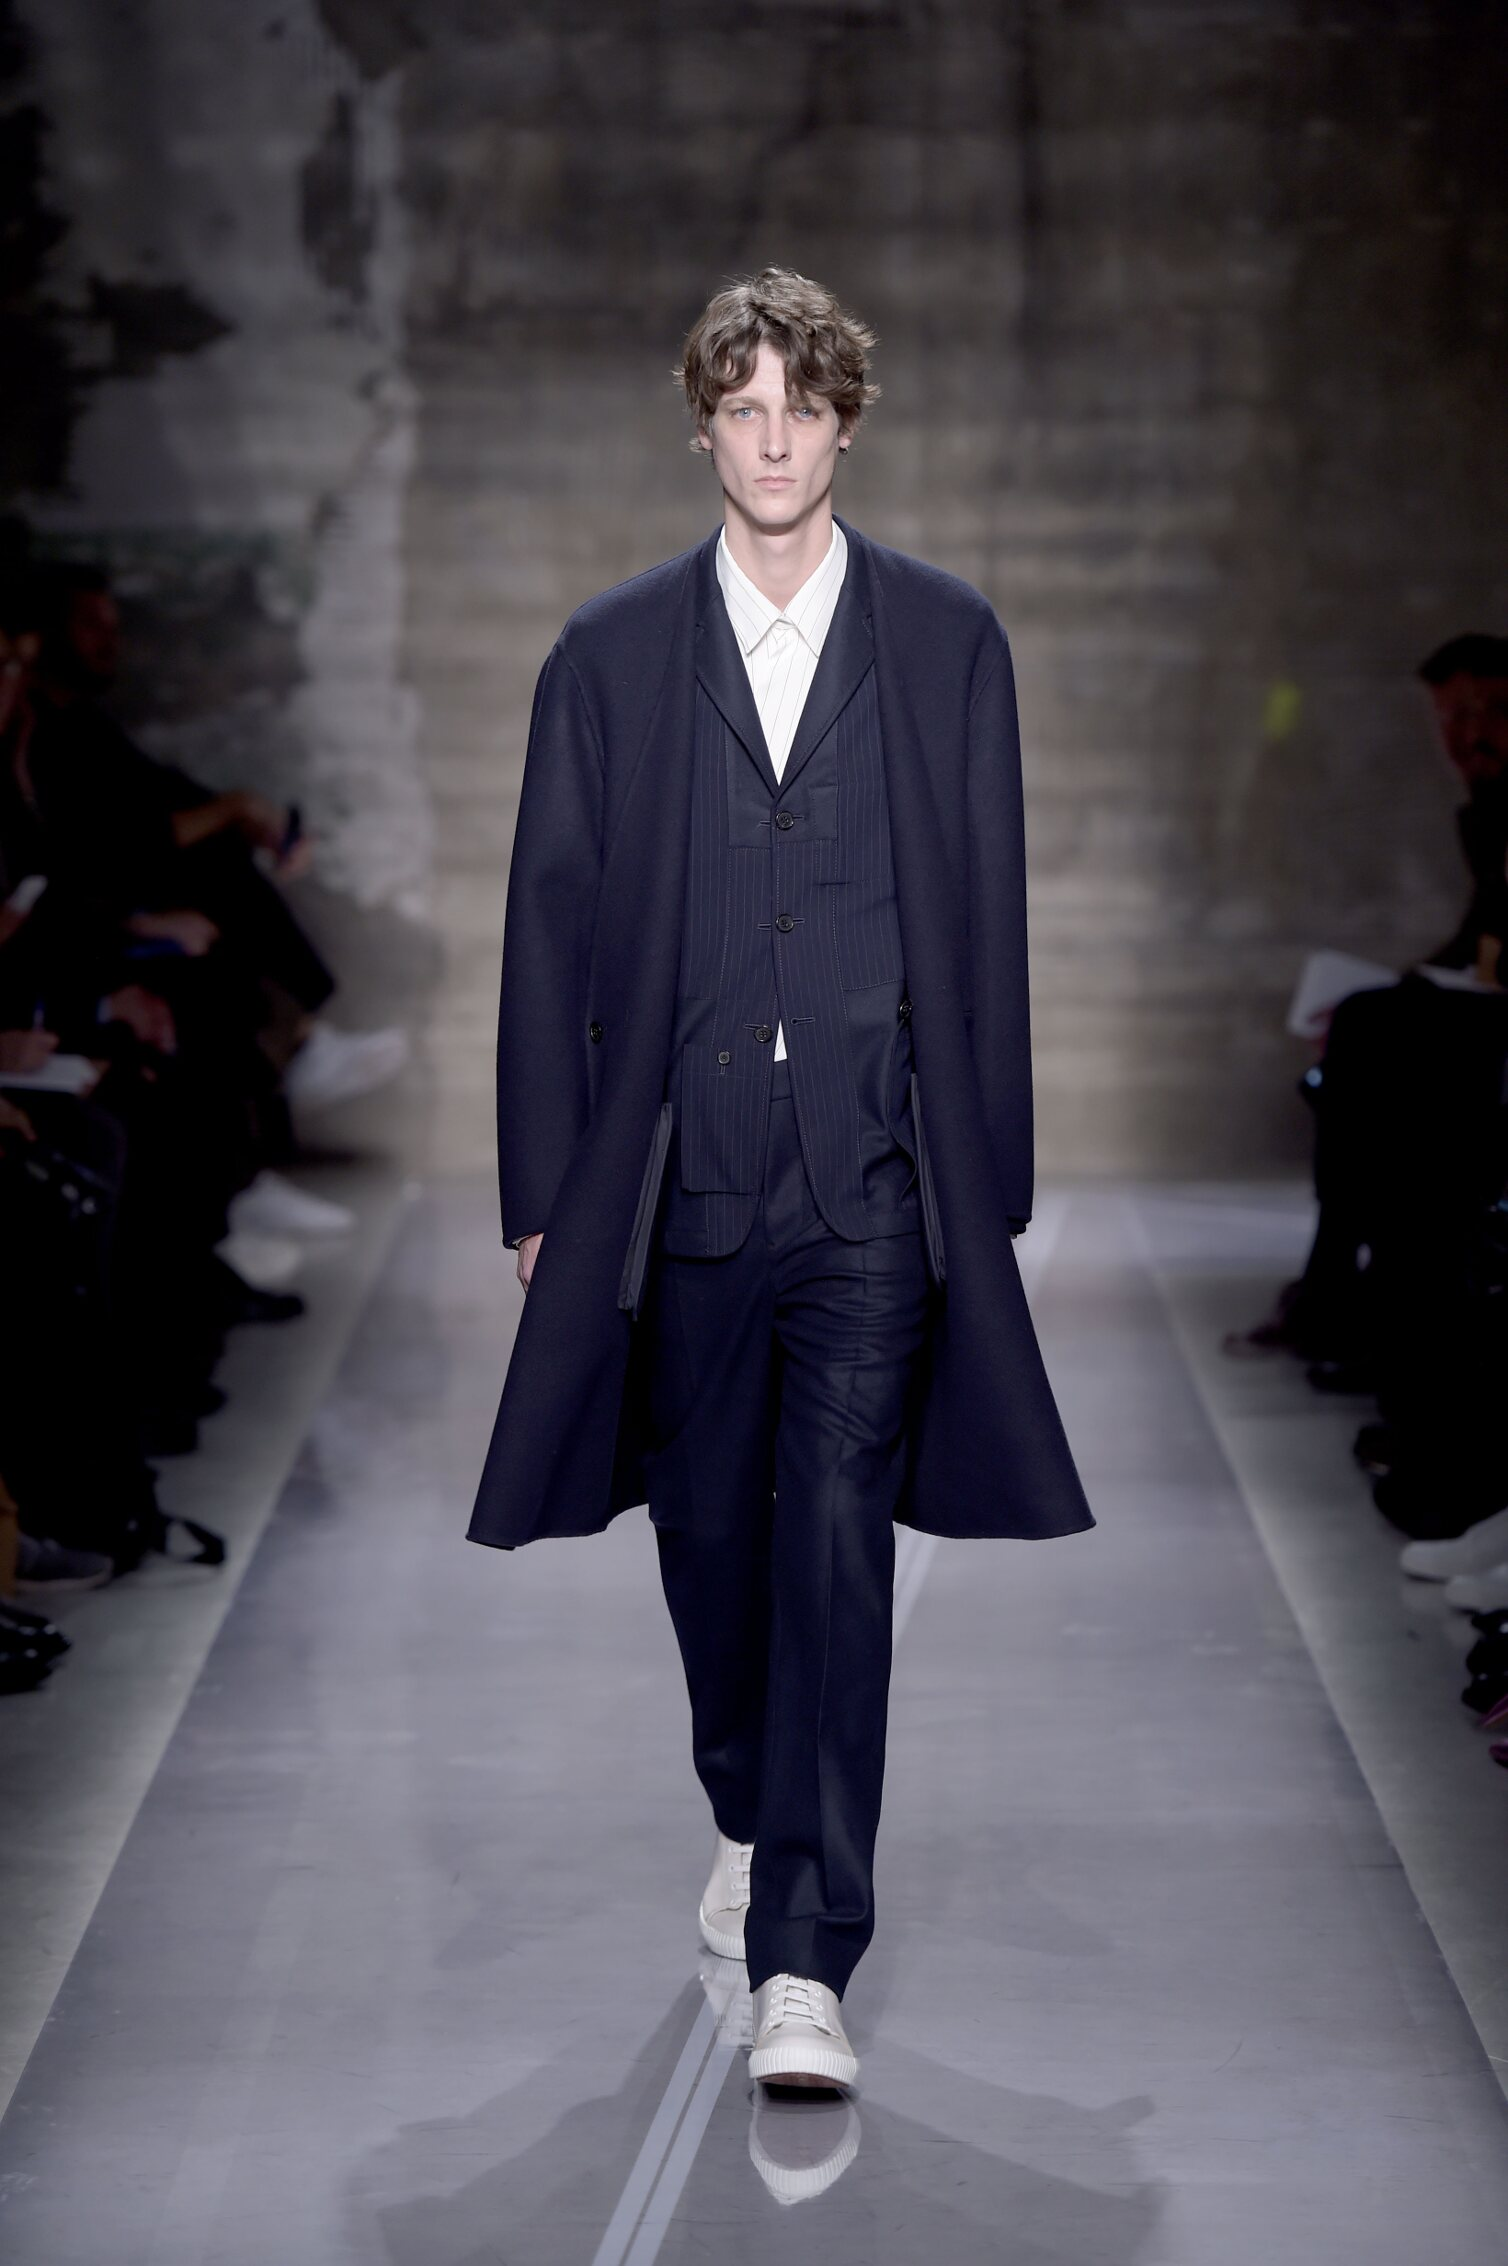 Catwalk Marni Man Fashion Show Winter 2016